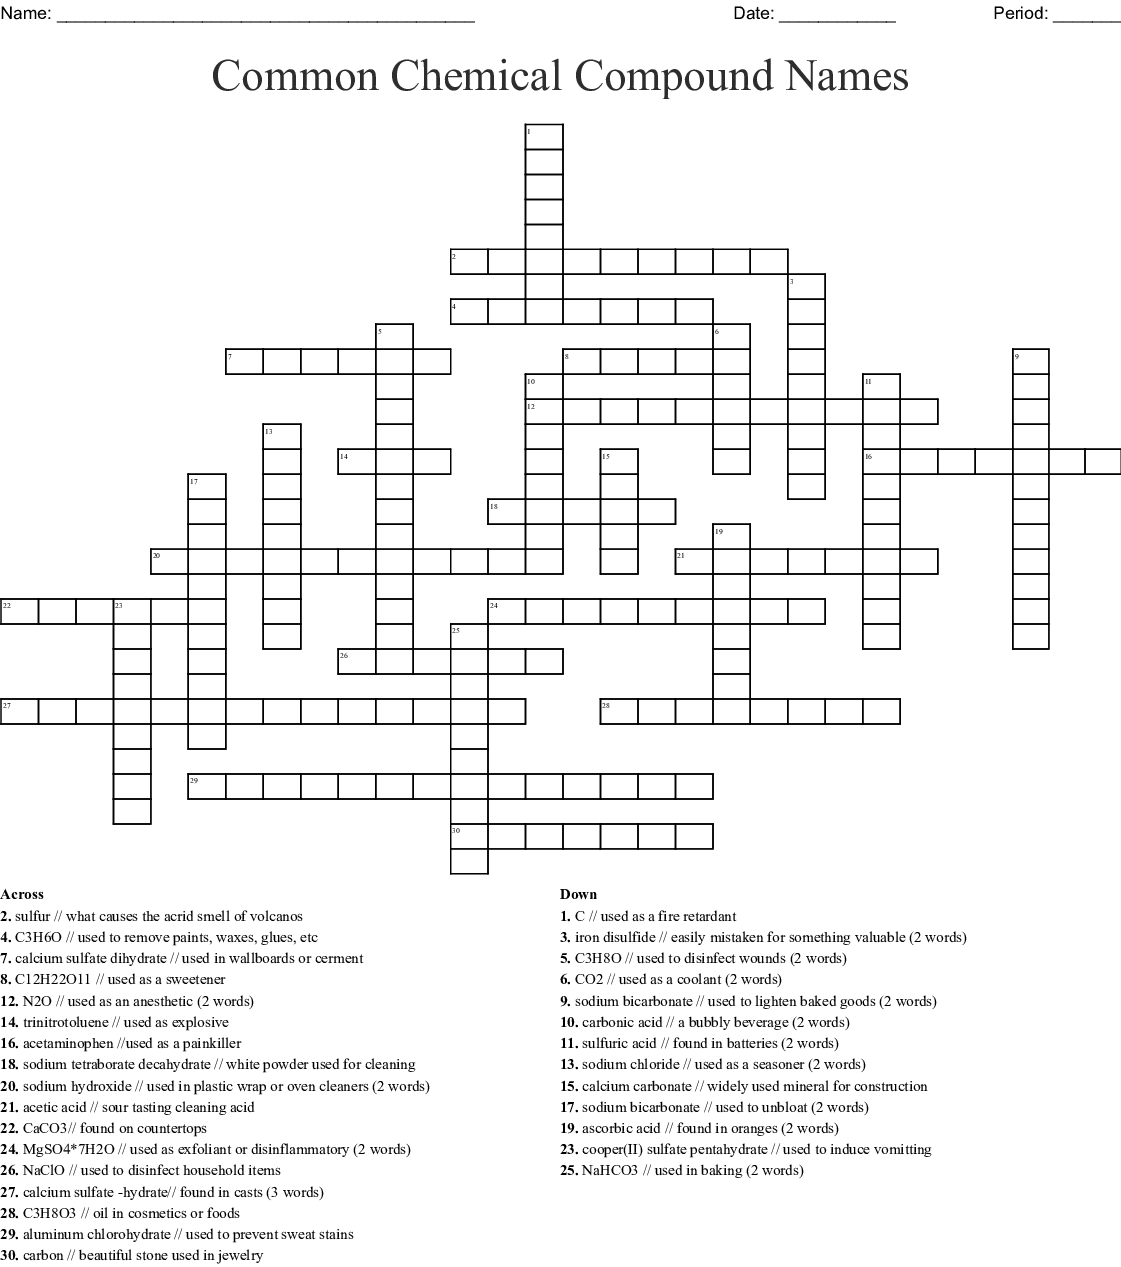 Chemical Compound Common Name Crossword - WordMint